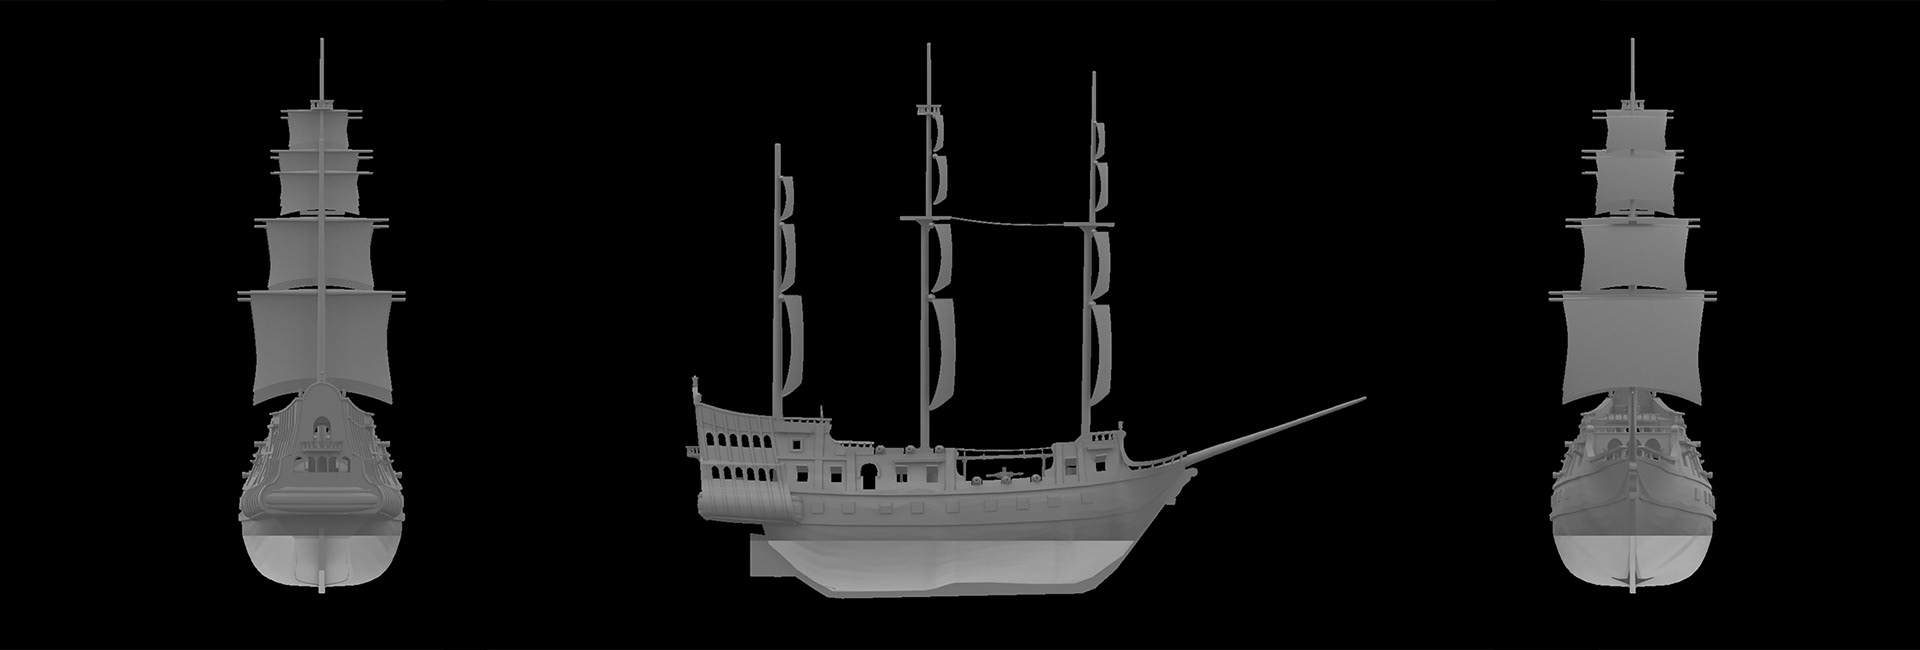 3D MODEL) 6 Player Ship | Sea of Thieves Forum